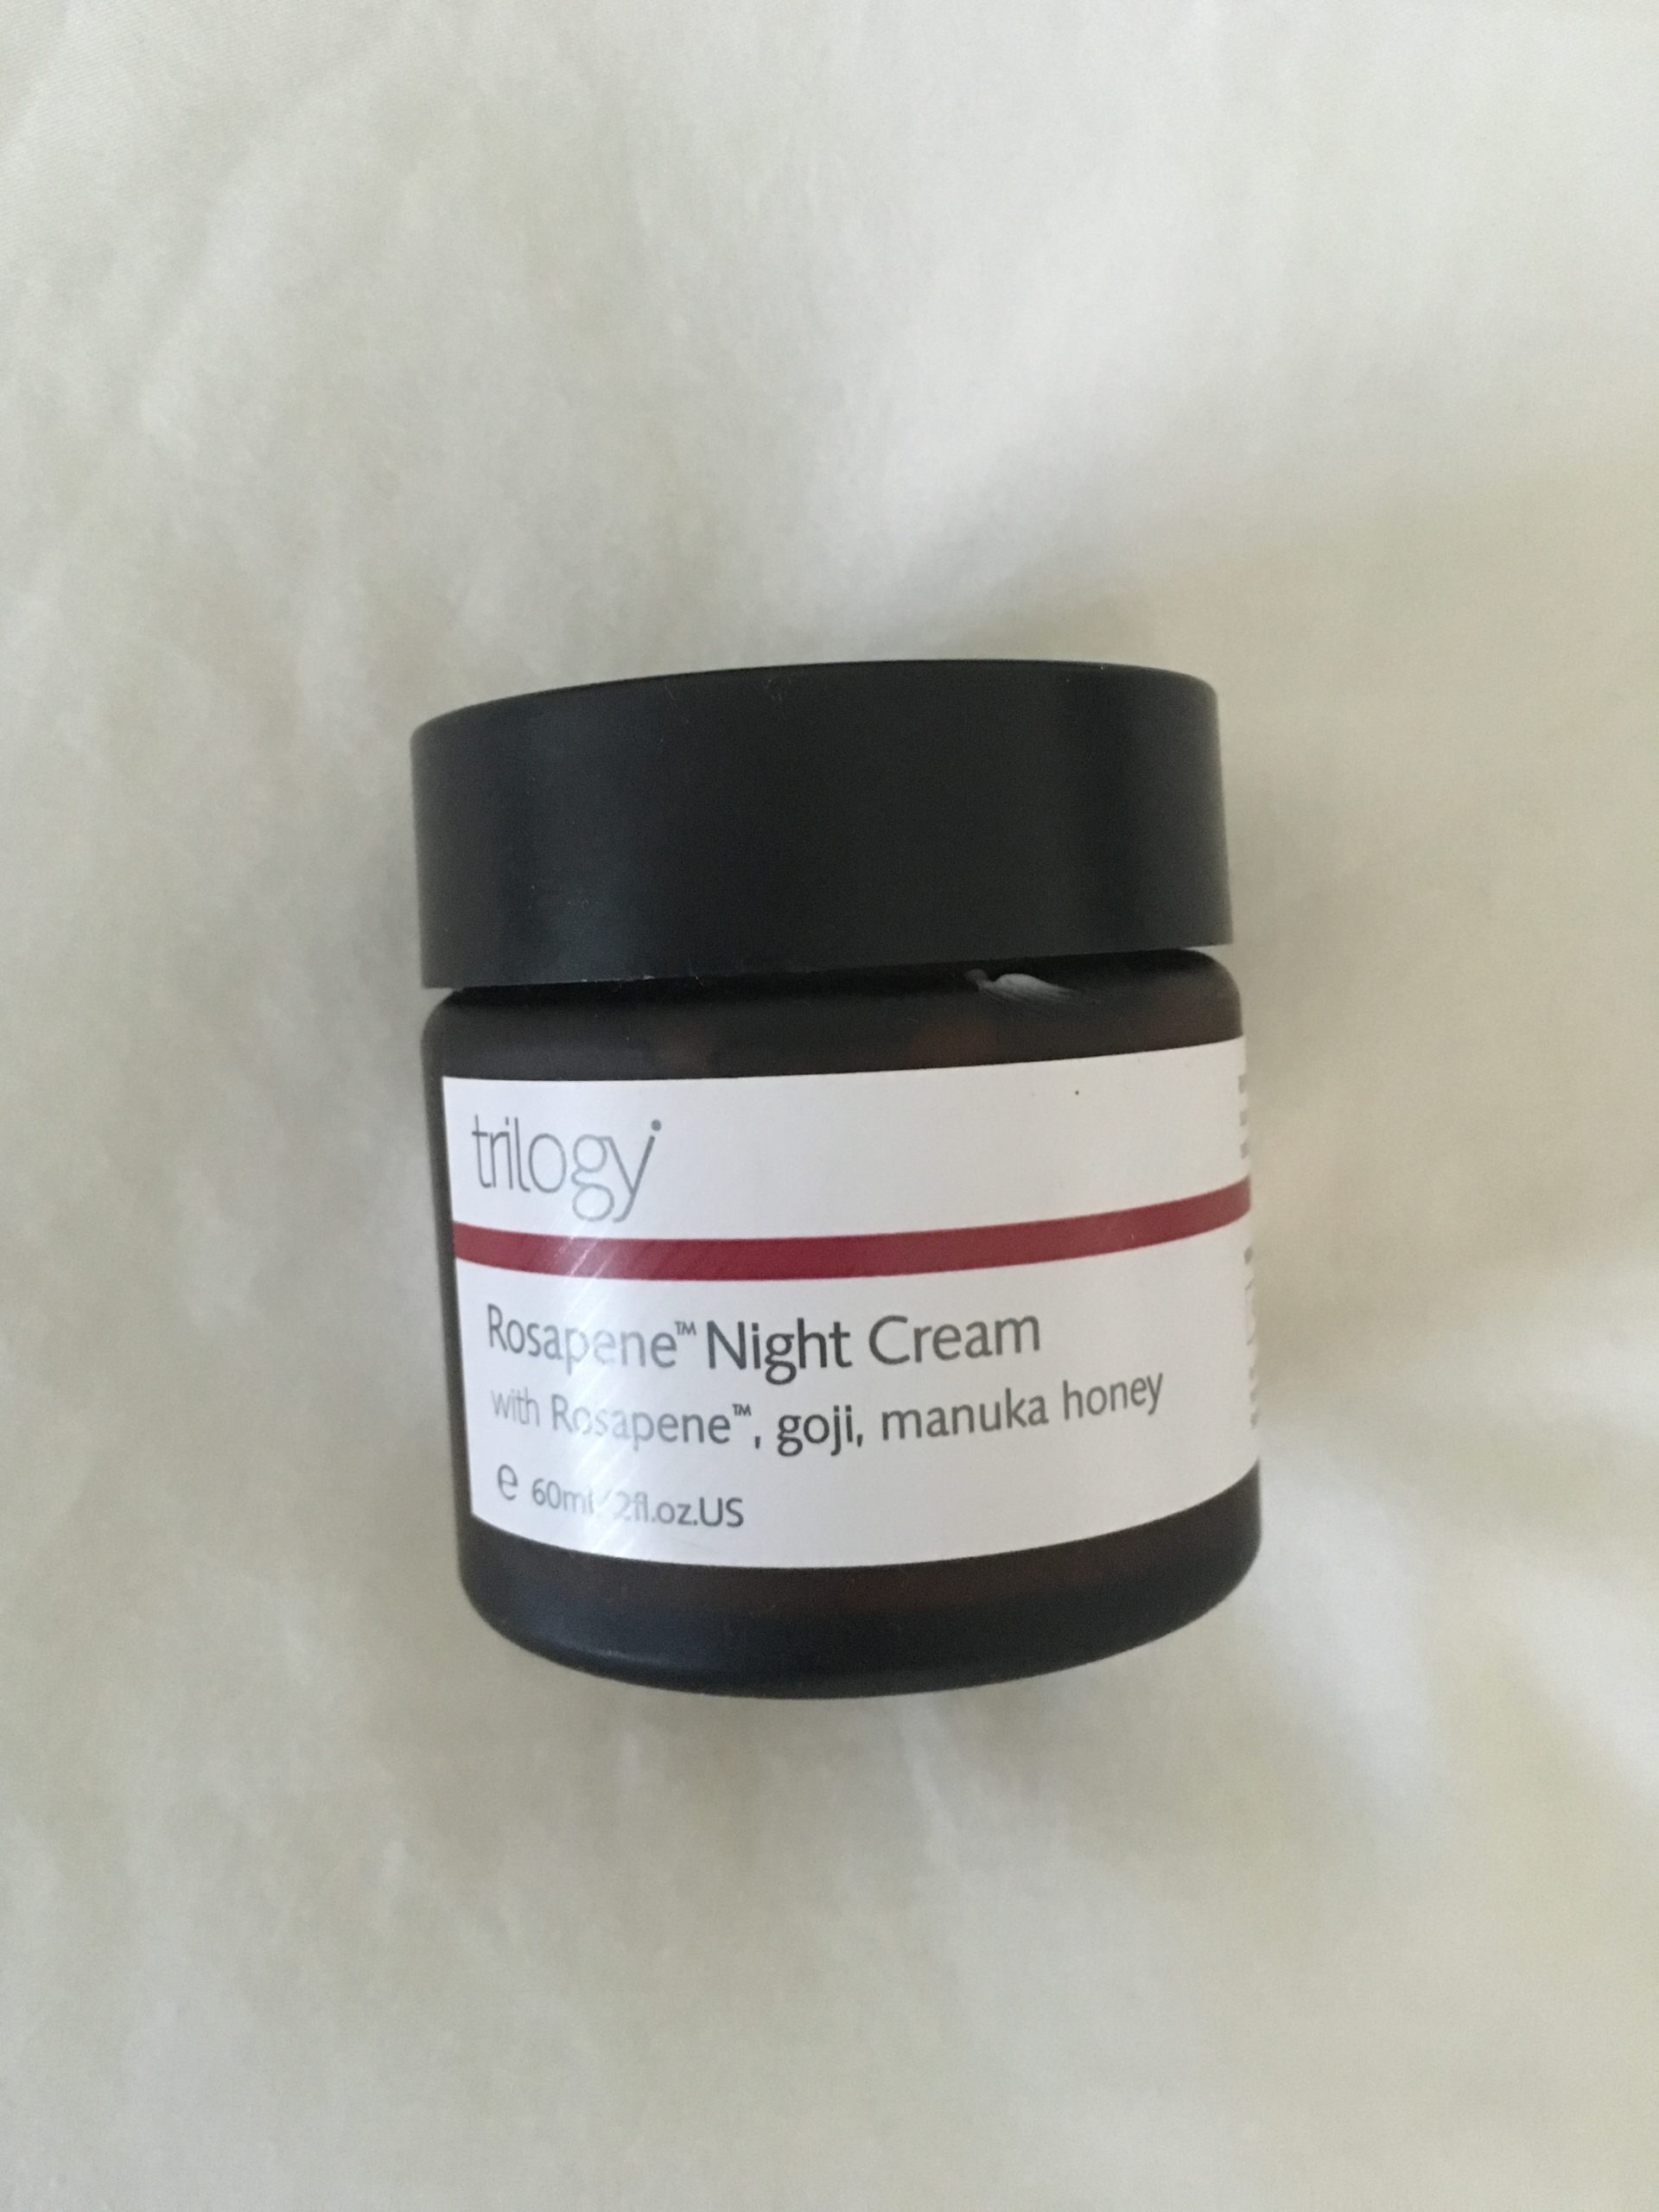 Trilogy Rosapene Night Cream